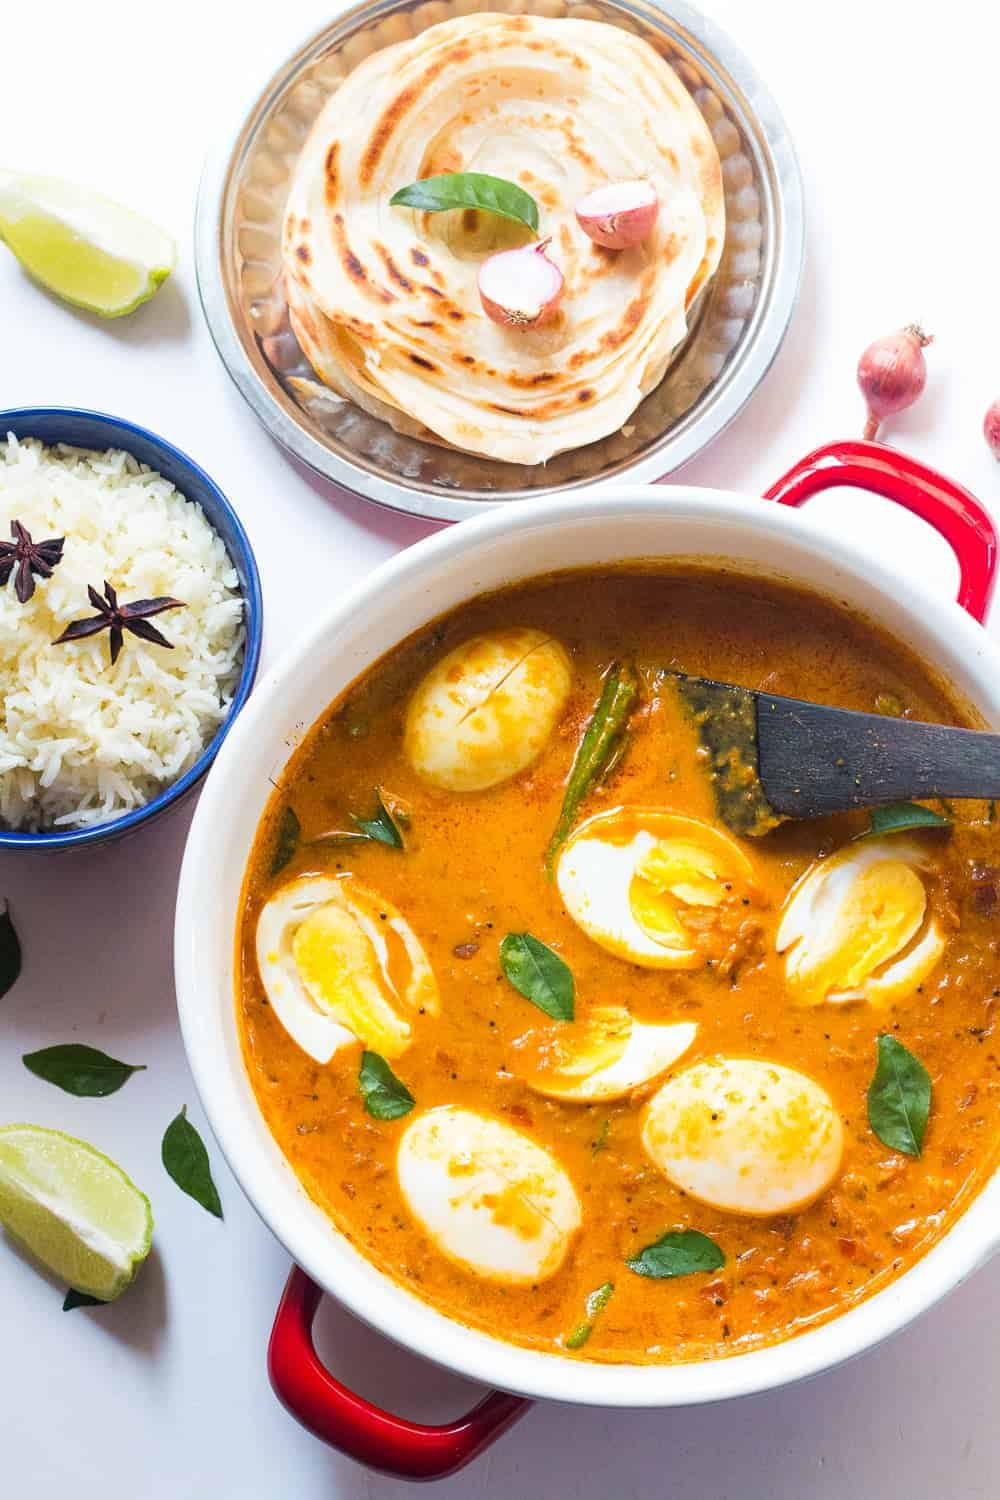 South Indian Style Egg Curry in a pot with steamed rice and malabar parathas